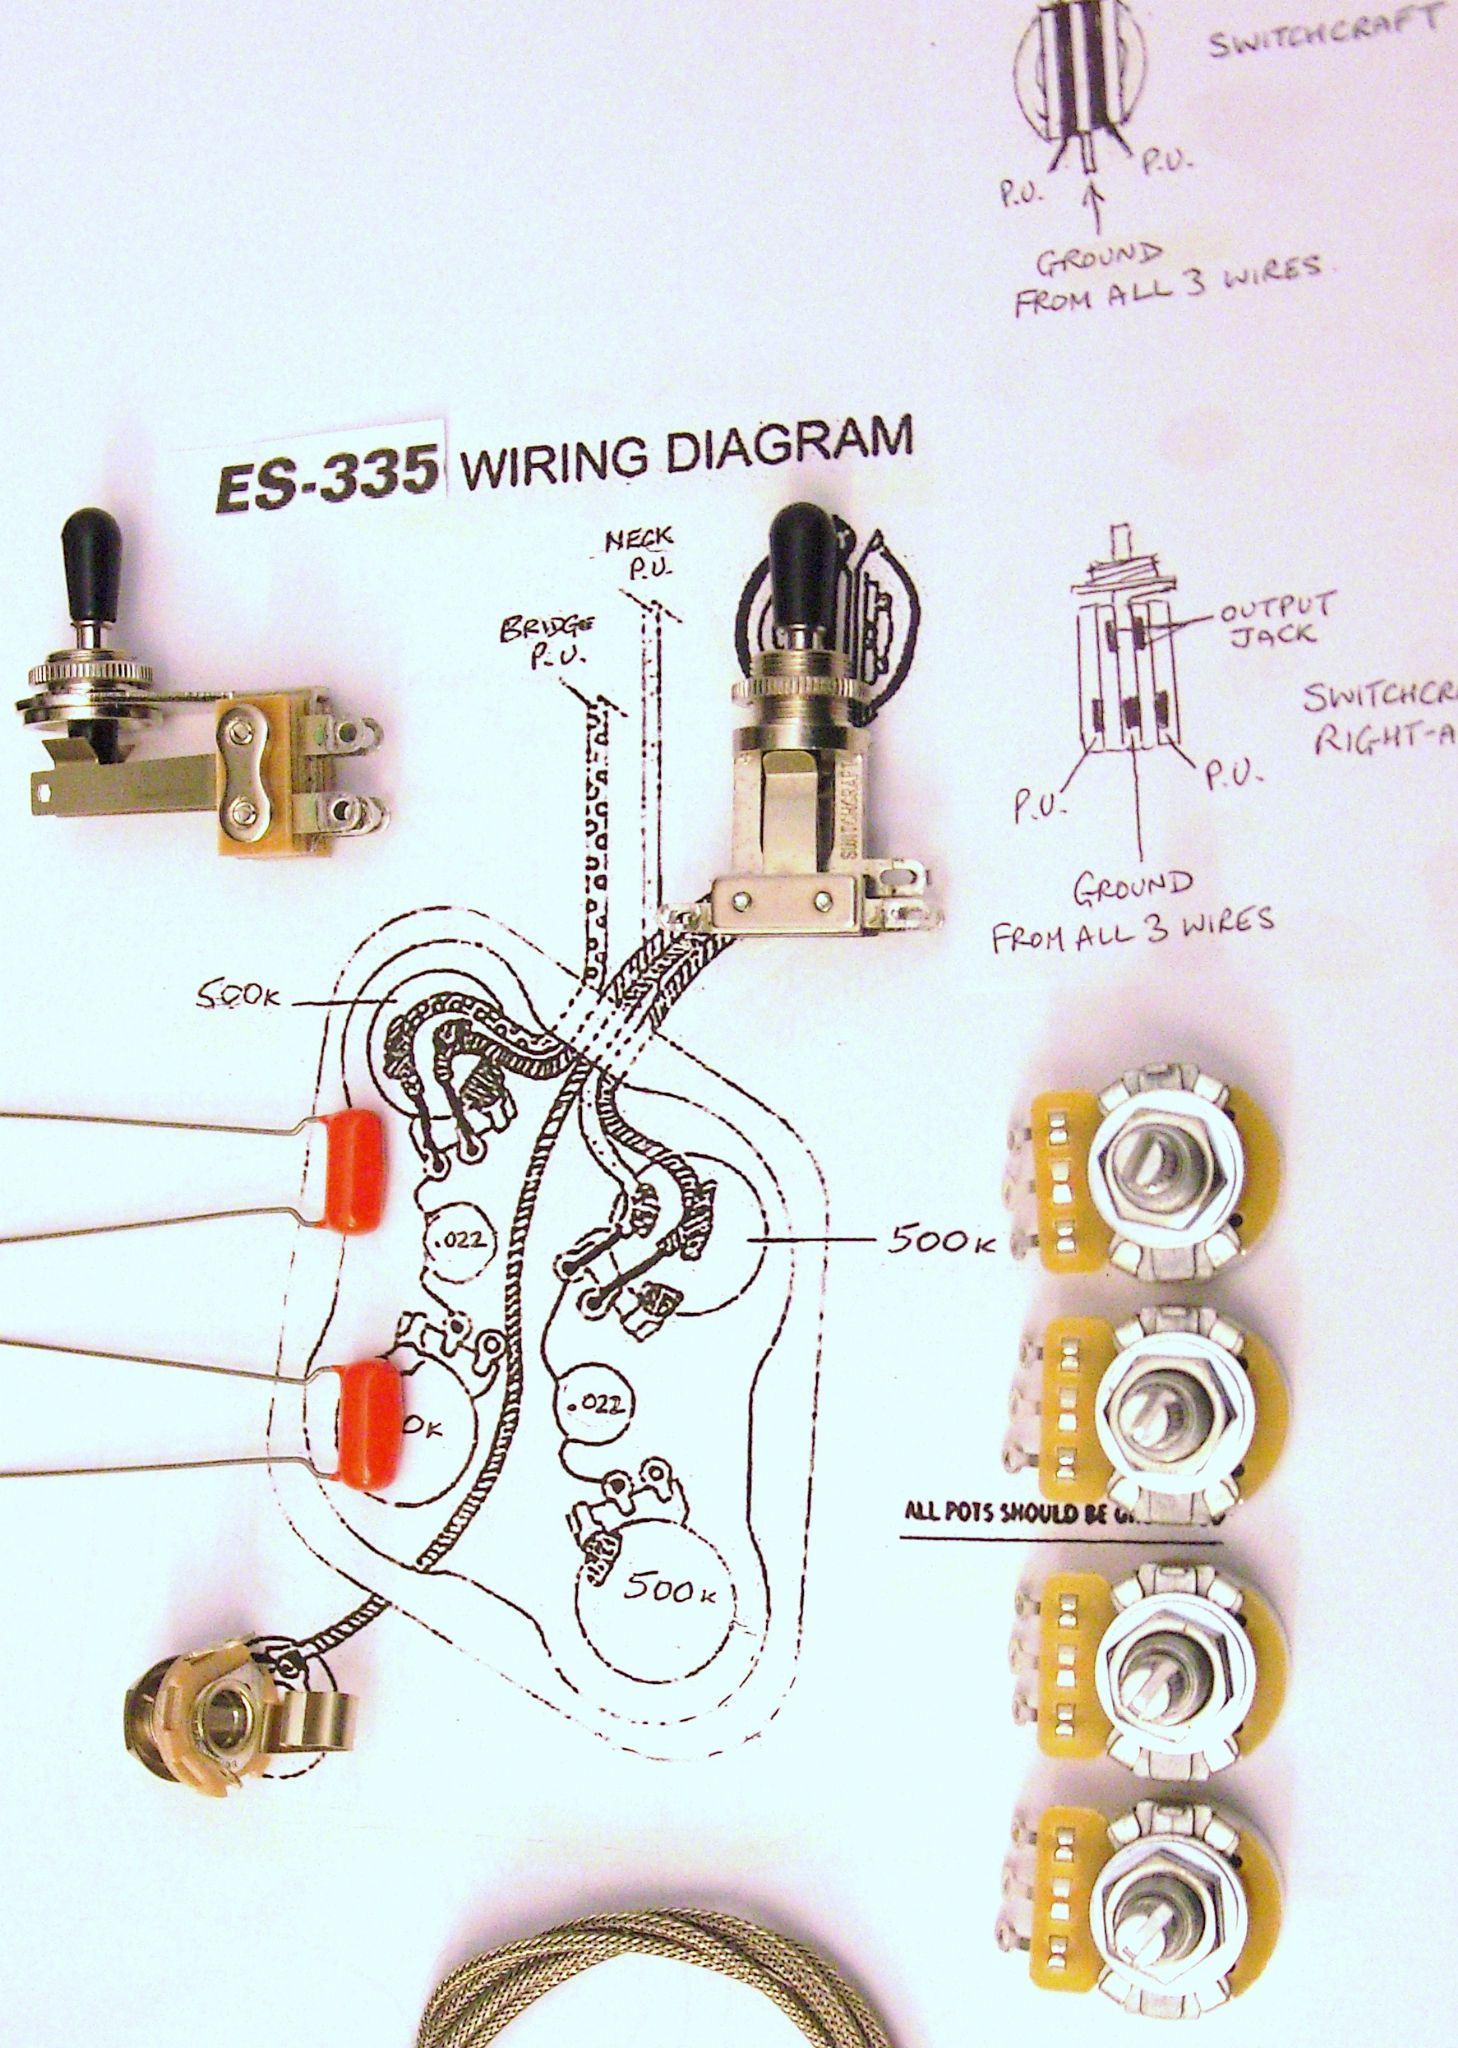 Sg Wiring Diagram Angled 3 Way Switchcraft Sg